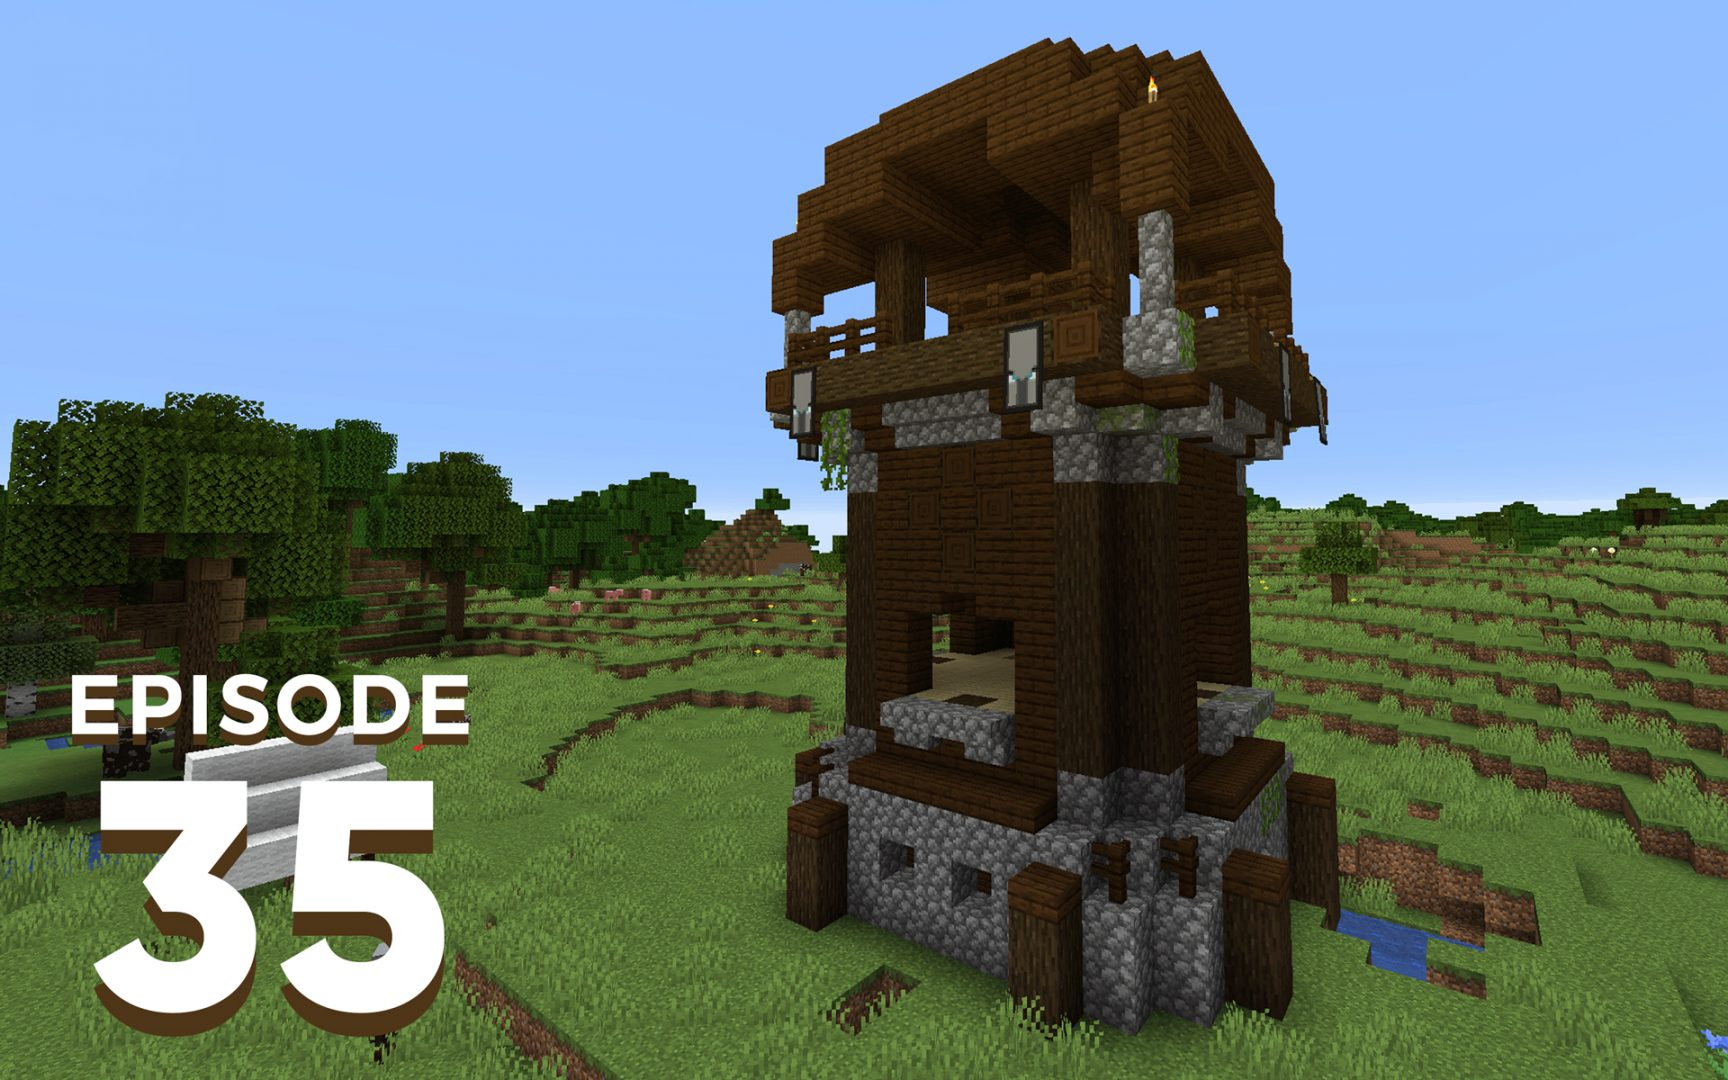 The Spawn Chunks 035: Backing Up Into Pre-release | The Spawn Chunks